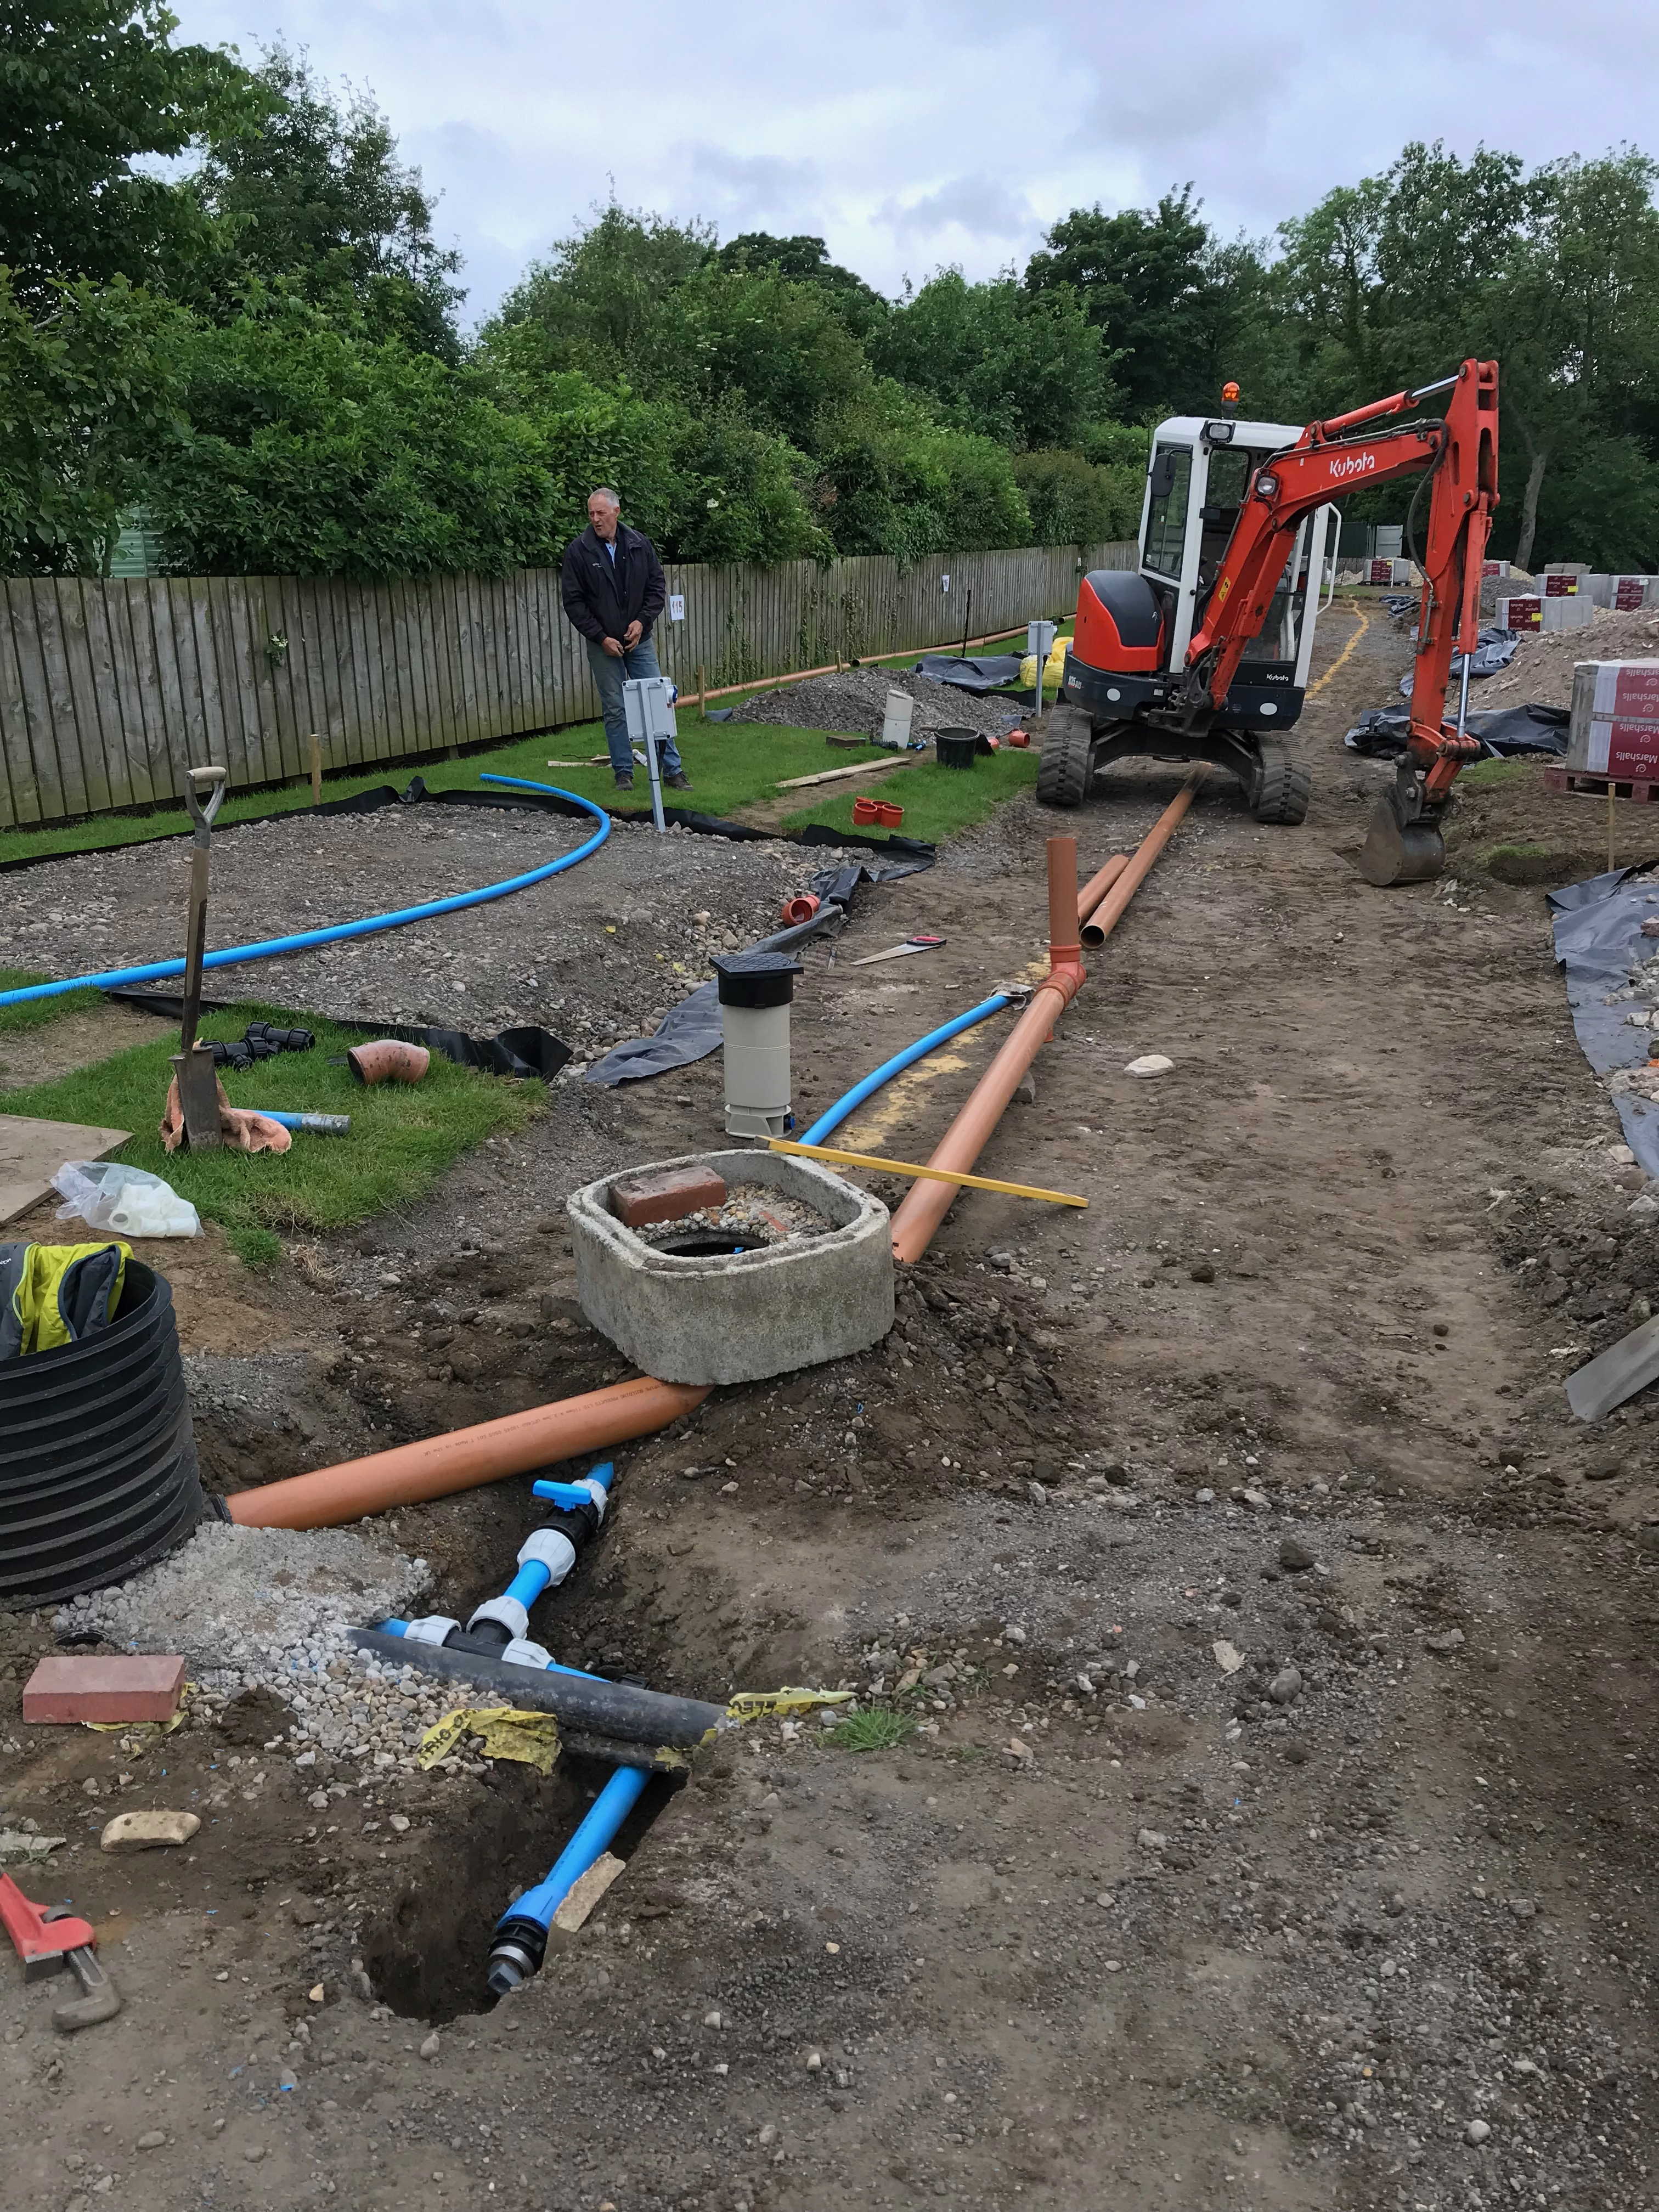 6th June – We Now Have Drains & Water